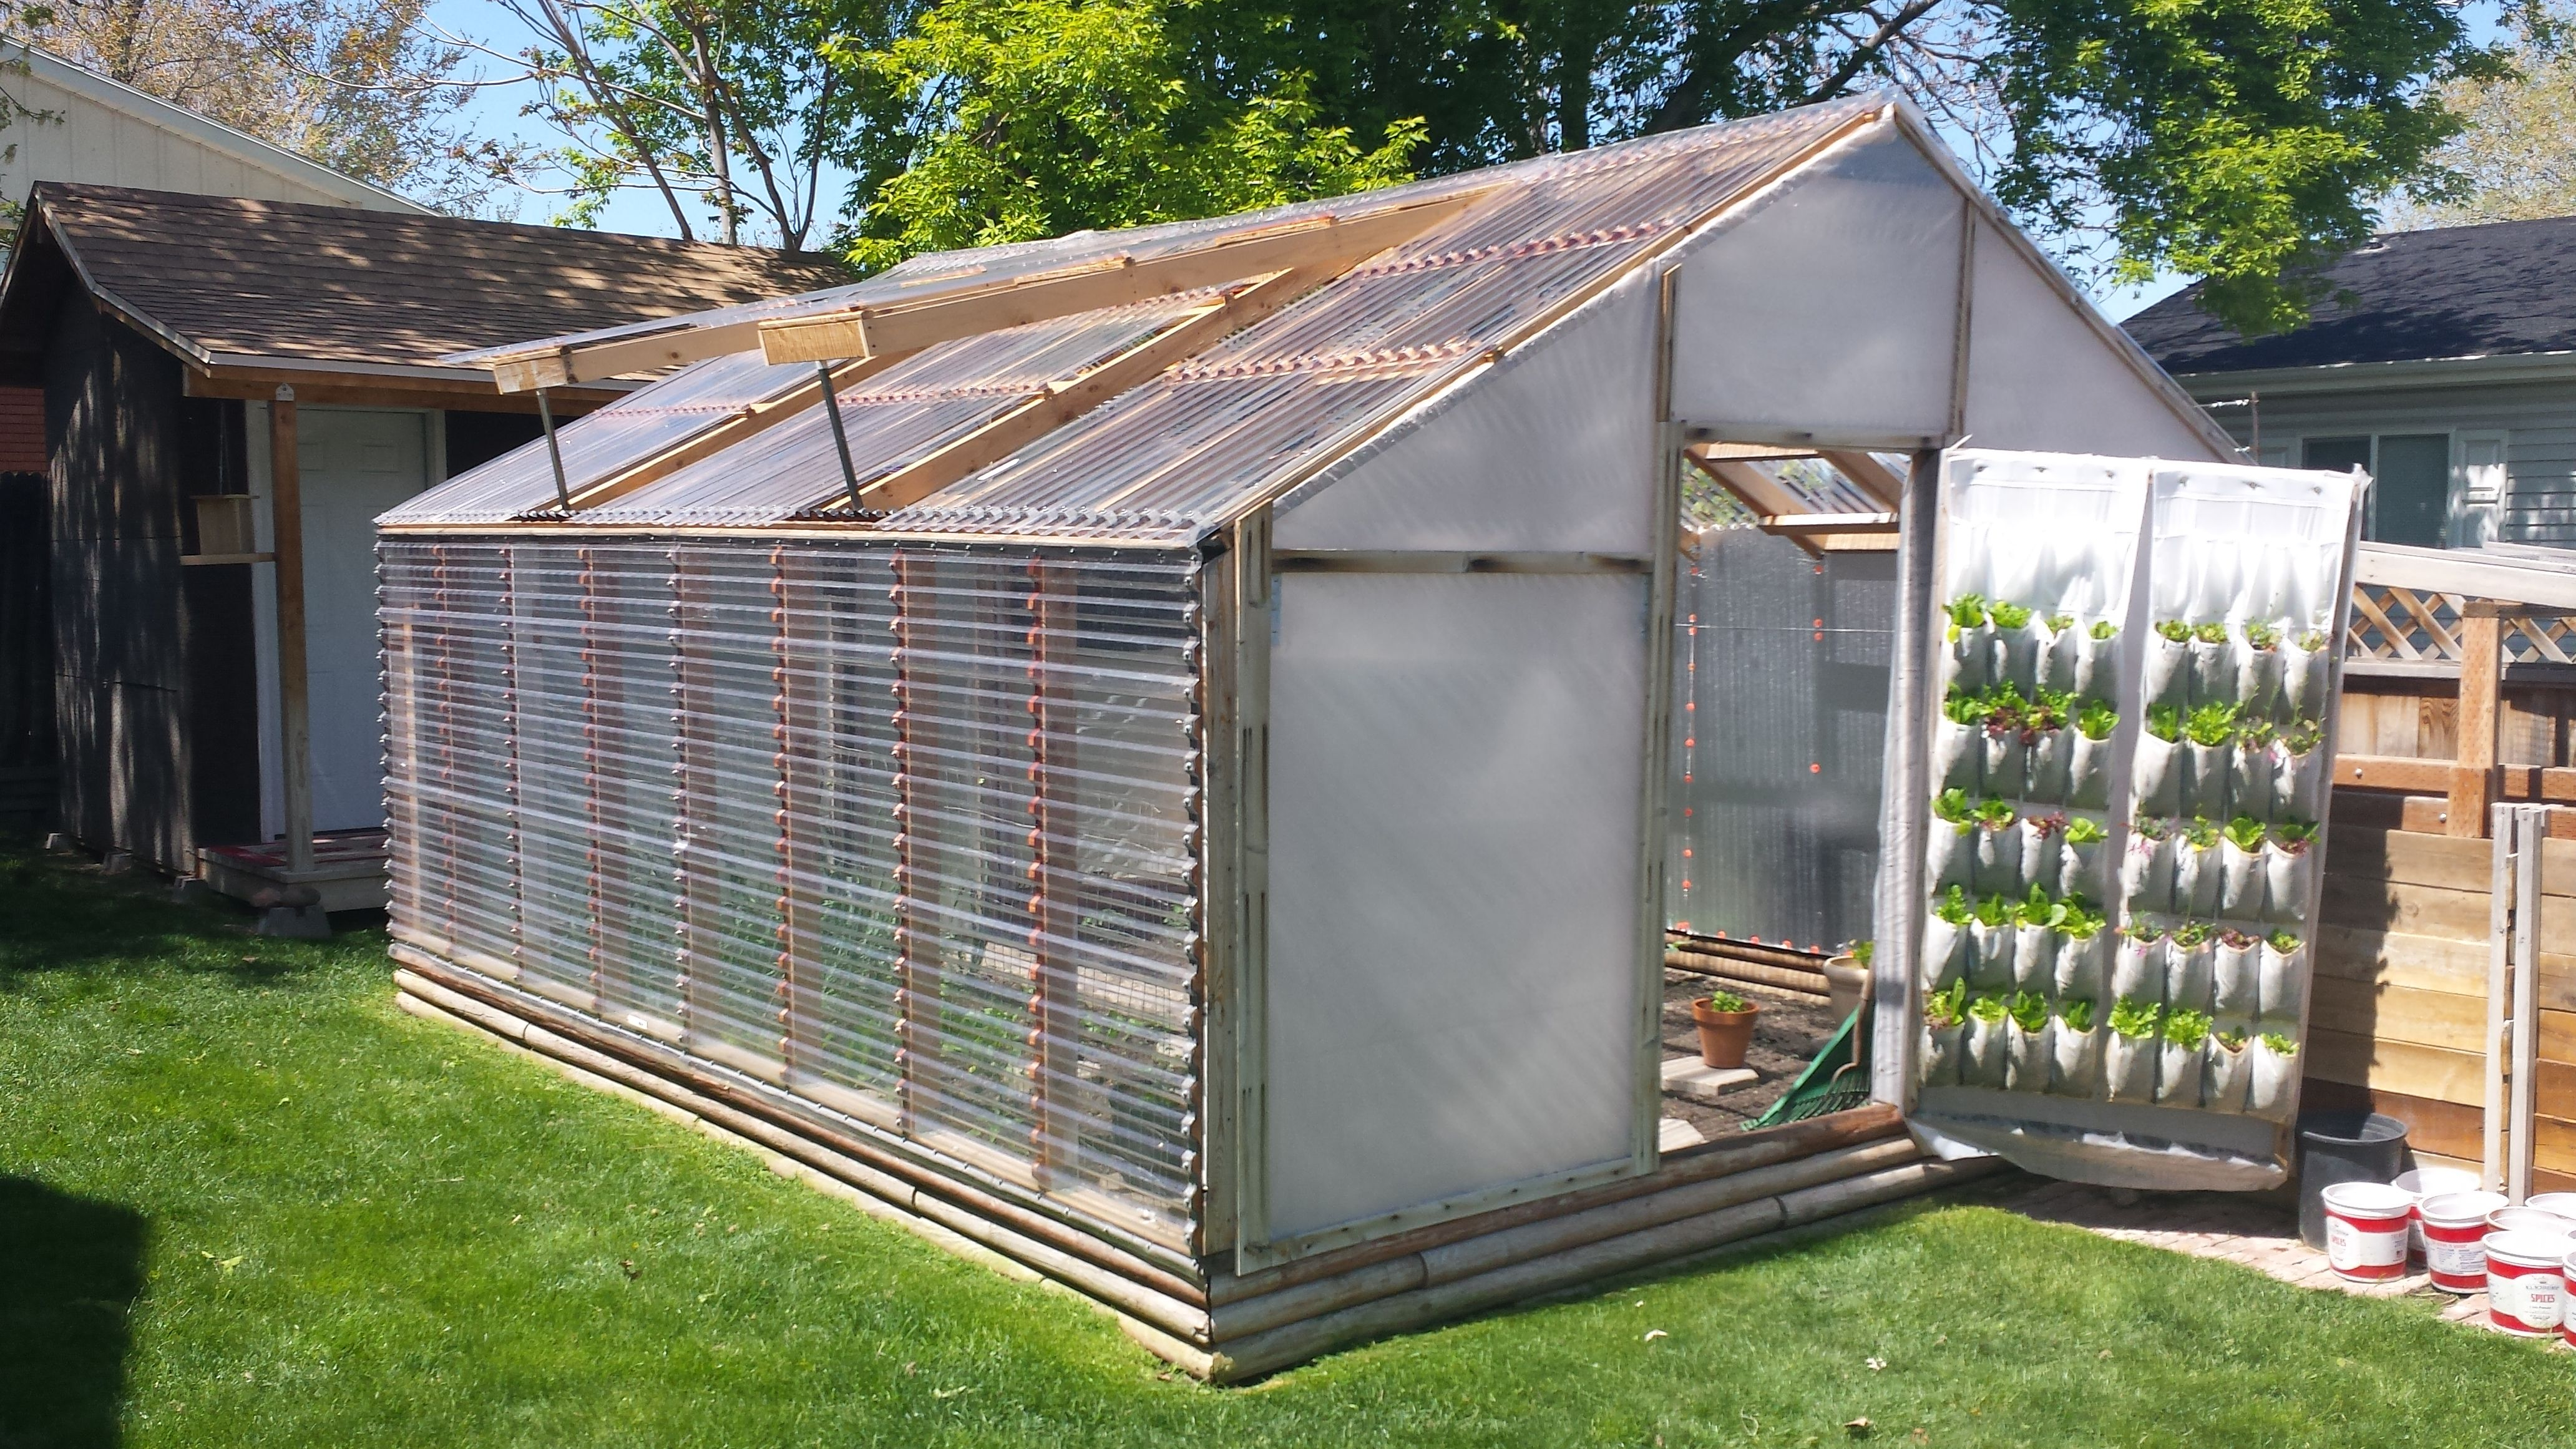 Greenhouse Updated From Pvc And Visqueen To Wood Frame And